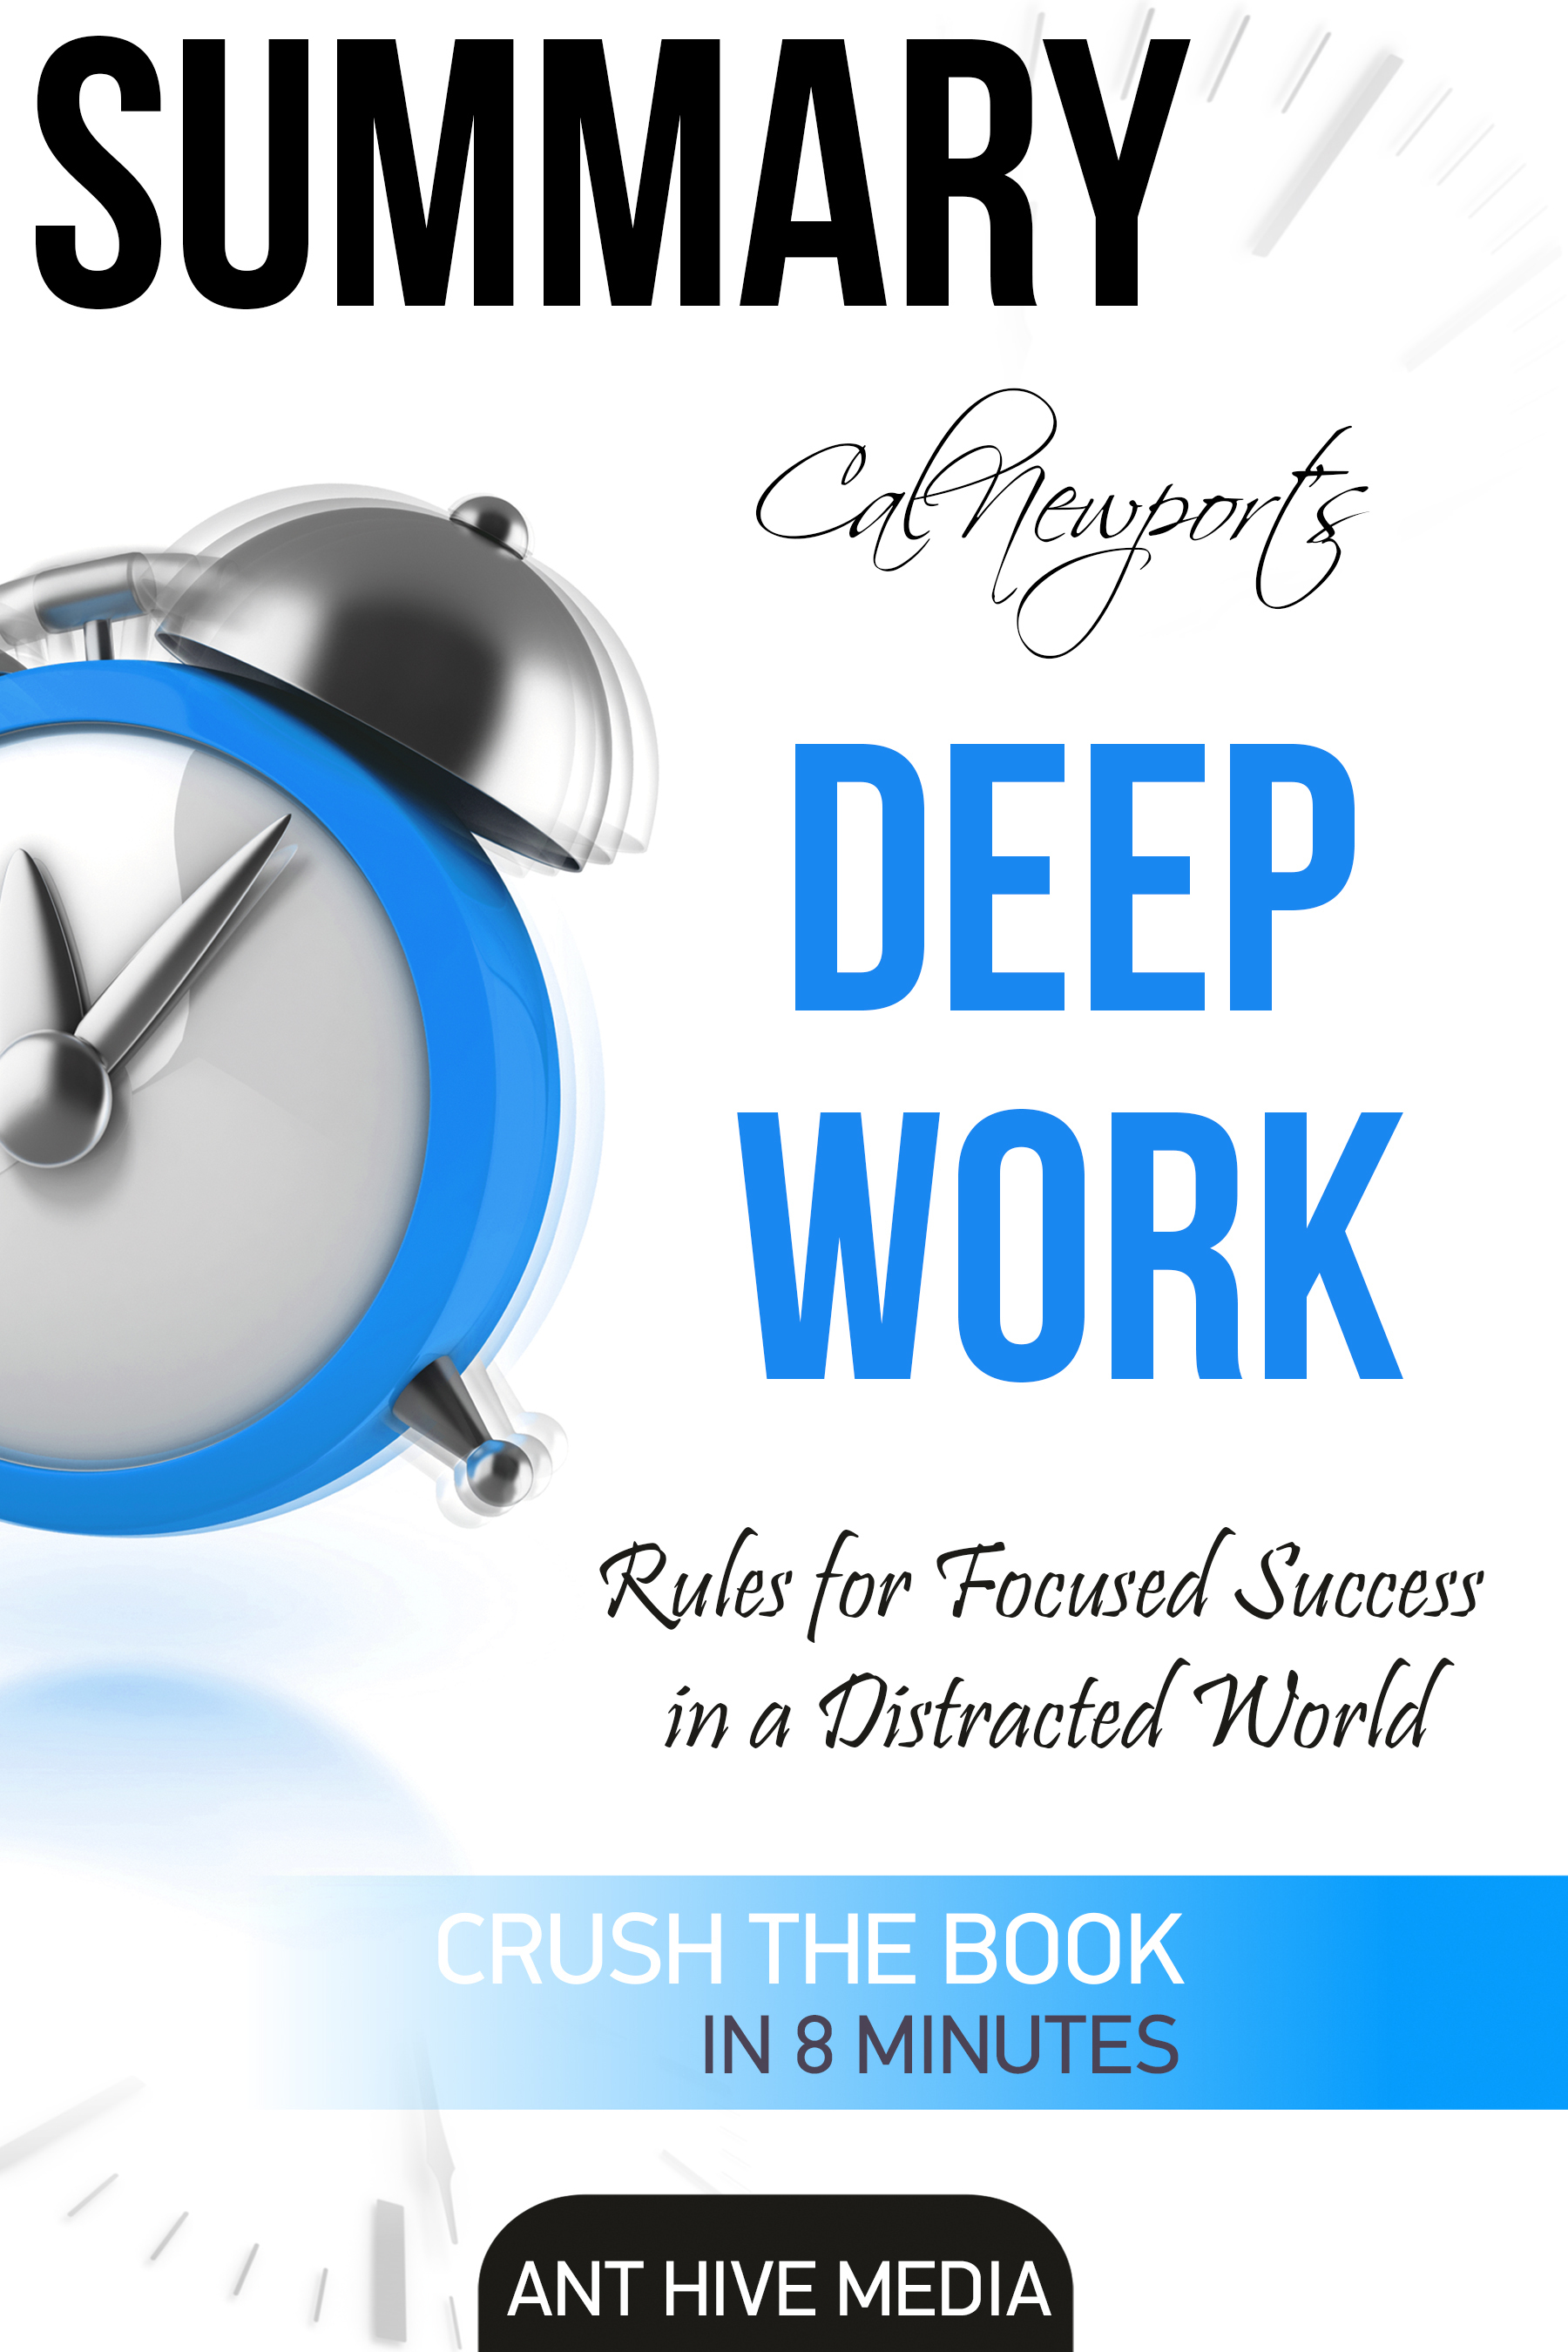 Cal Newport's Deep Work: Rules for Focused Success in a Distracted World | Summary